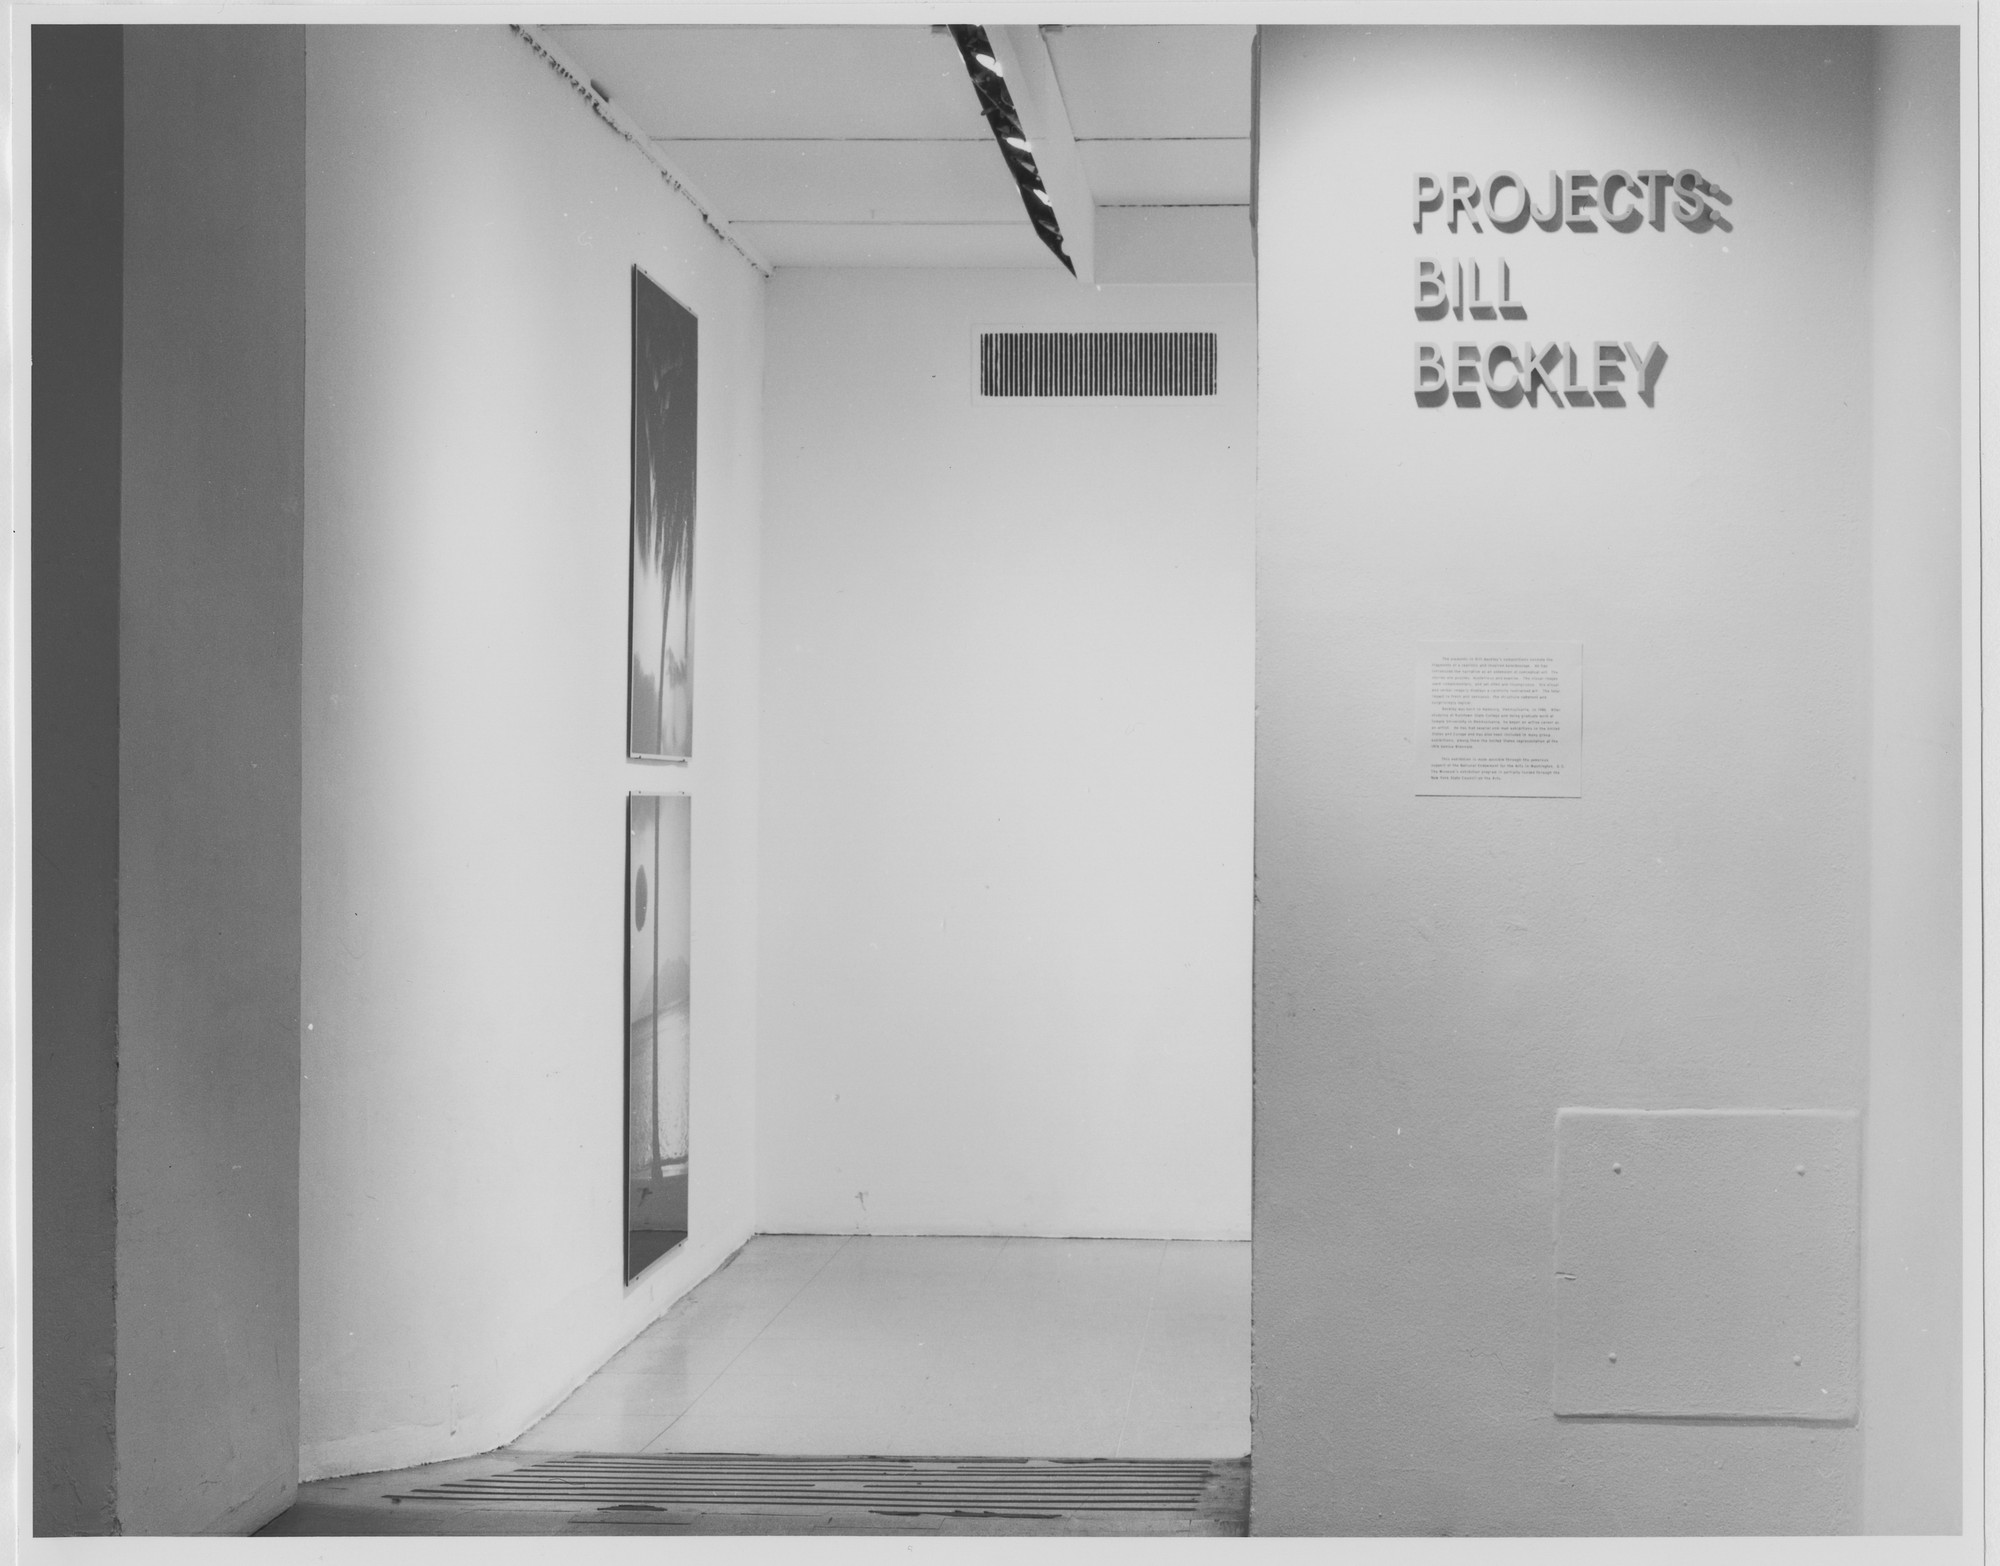 "Installation view of the exhibition, ""Projects: William Beckley"" October 14, 1978–November 28, 1978. Photographic Archive. The Museum of Modern Art Archives, New York. IN1234.1. Photograph by Katherine Keller."